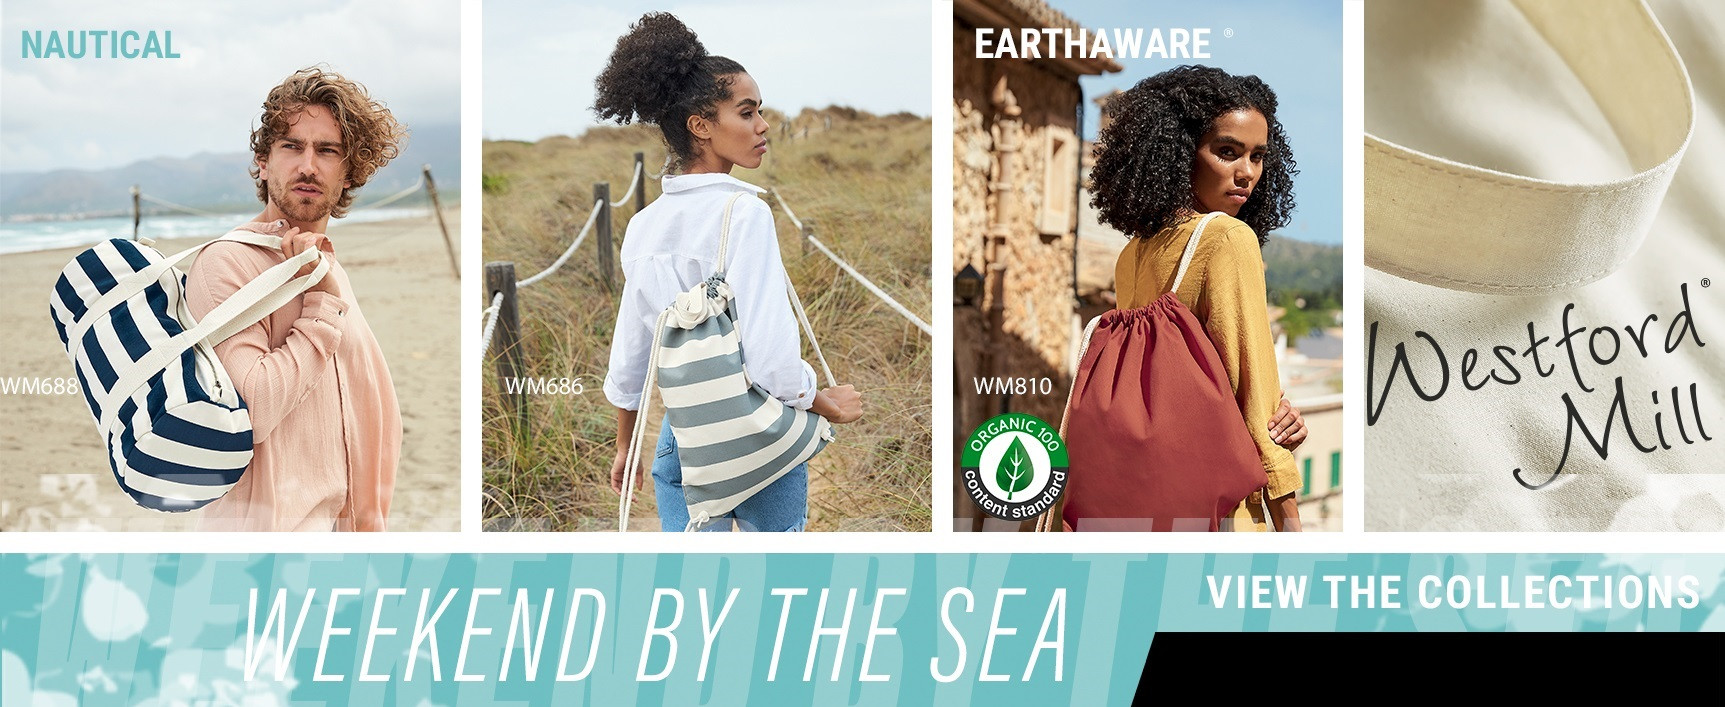 Westford Mill : Earthaware & Nautical collections